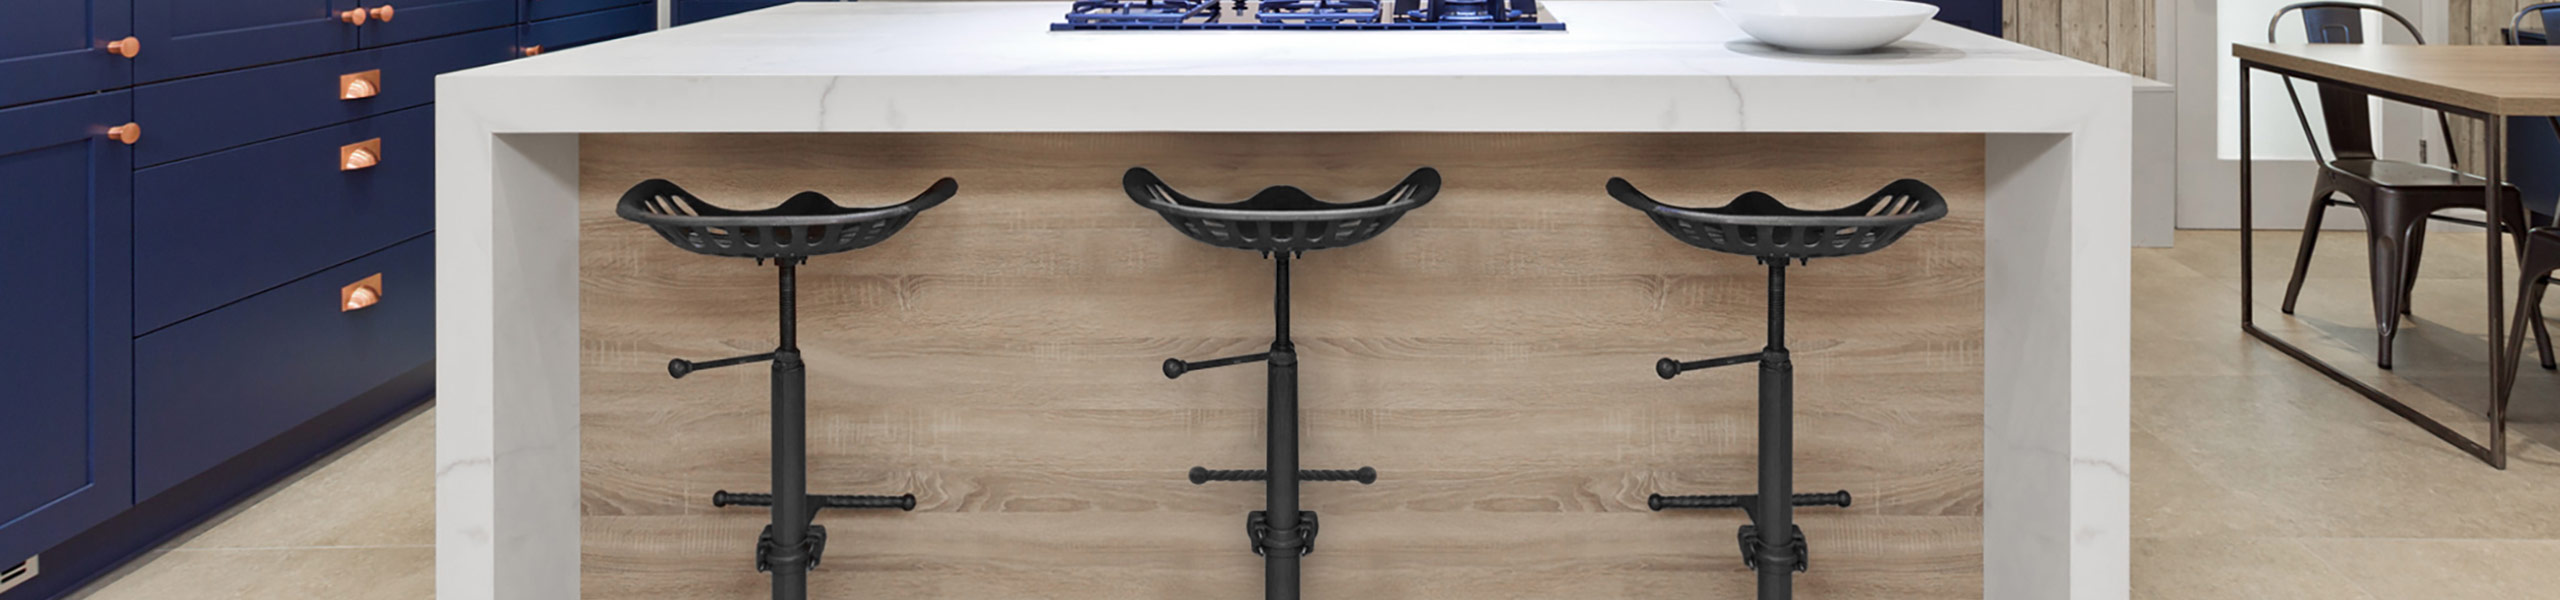 Harvester Stool Gunmetal Video Banner